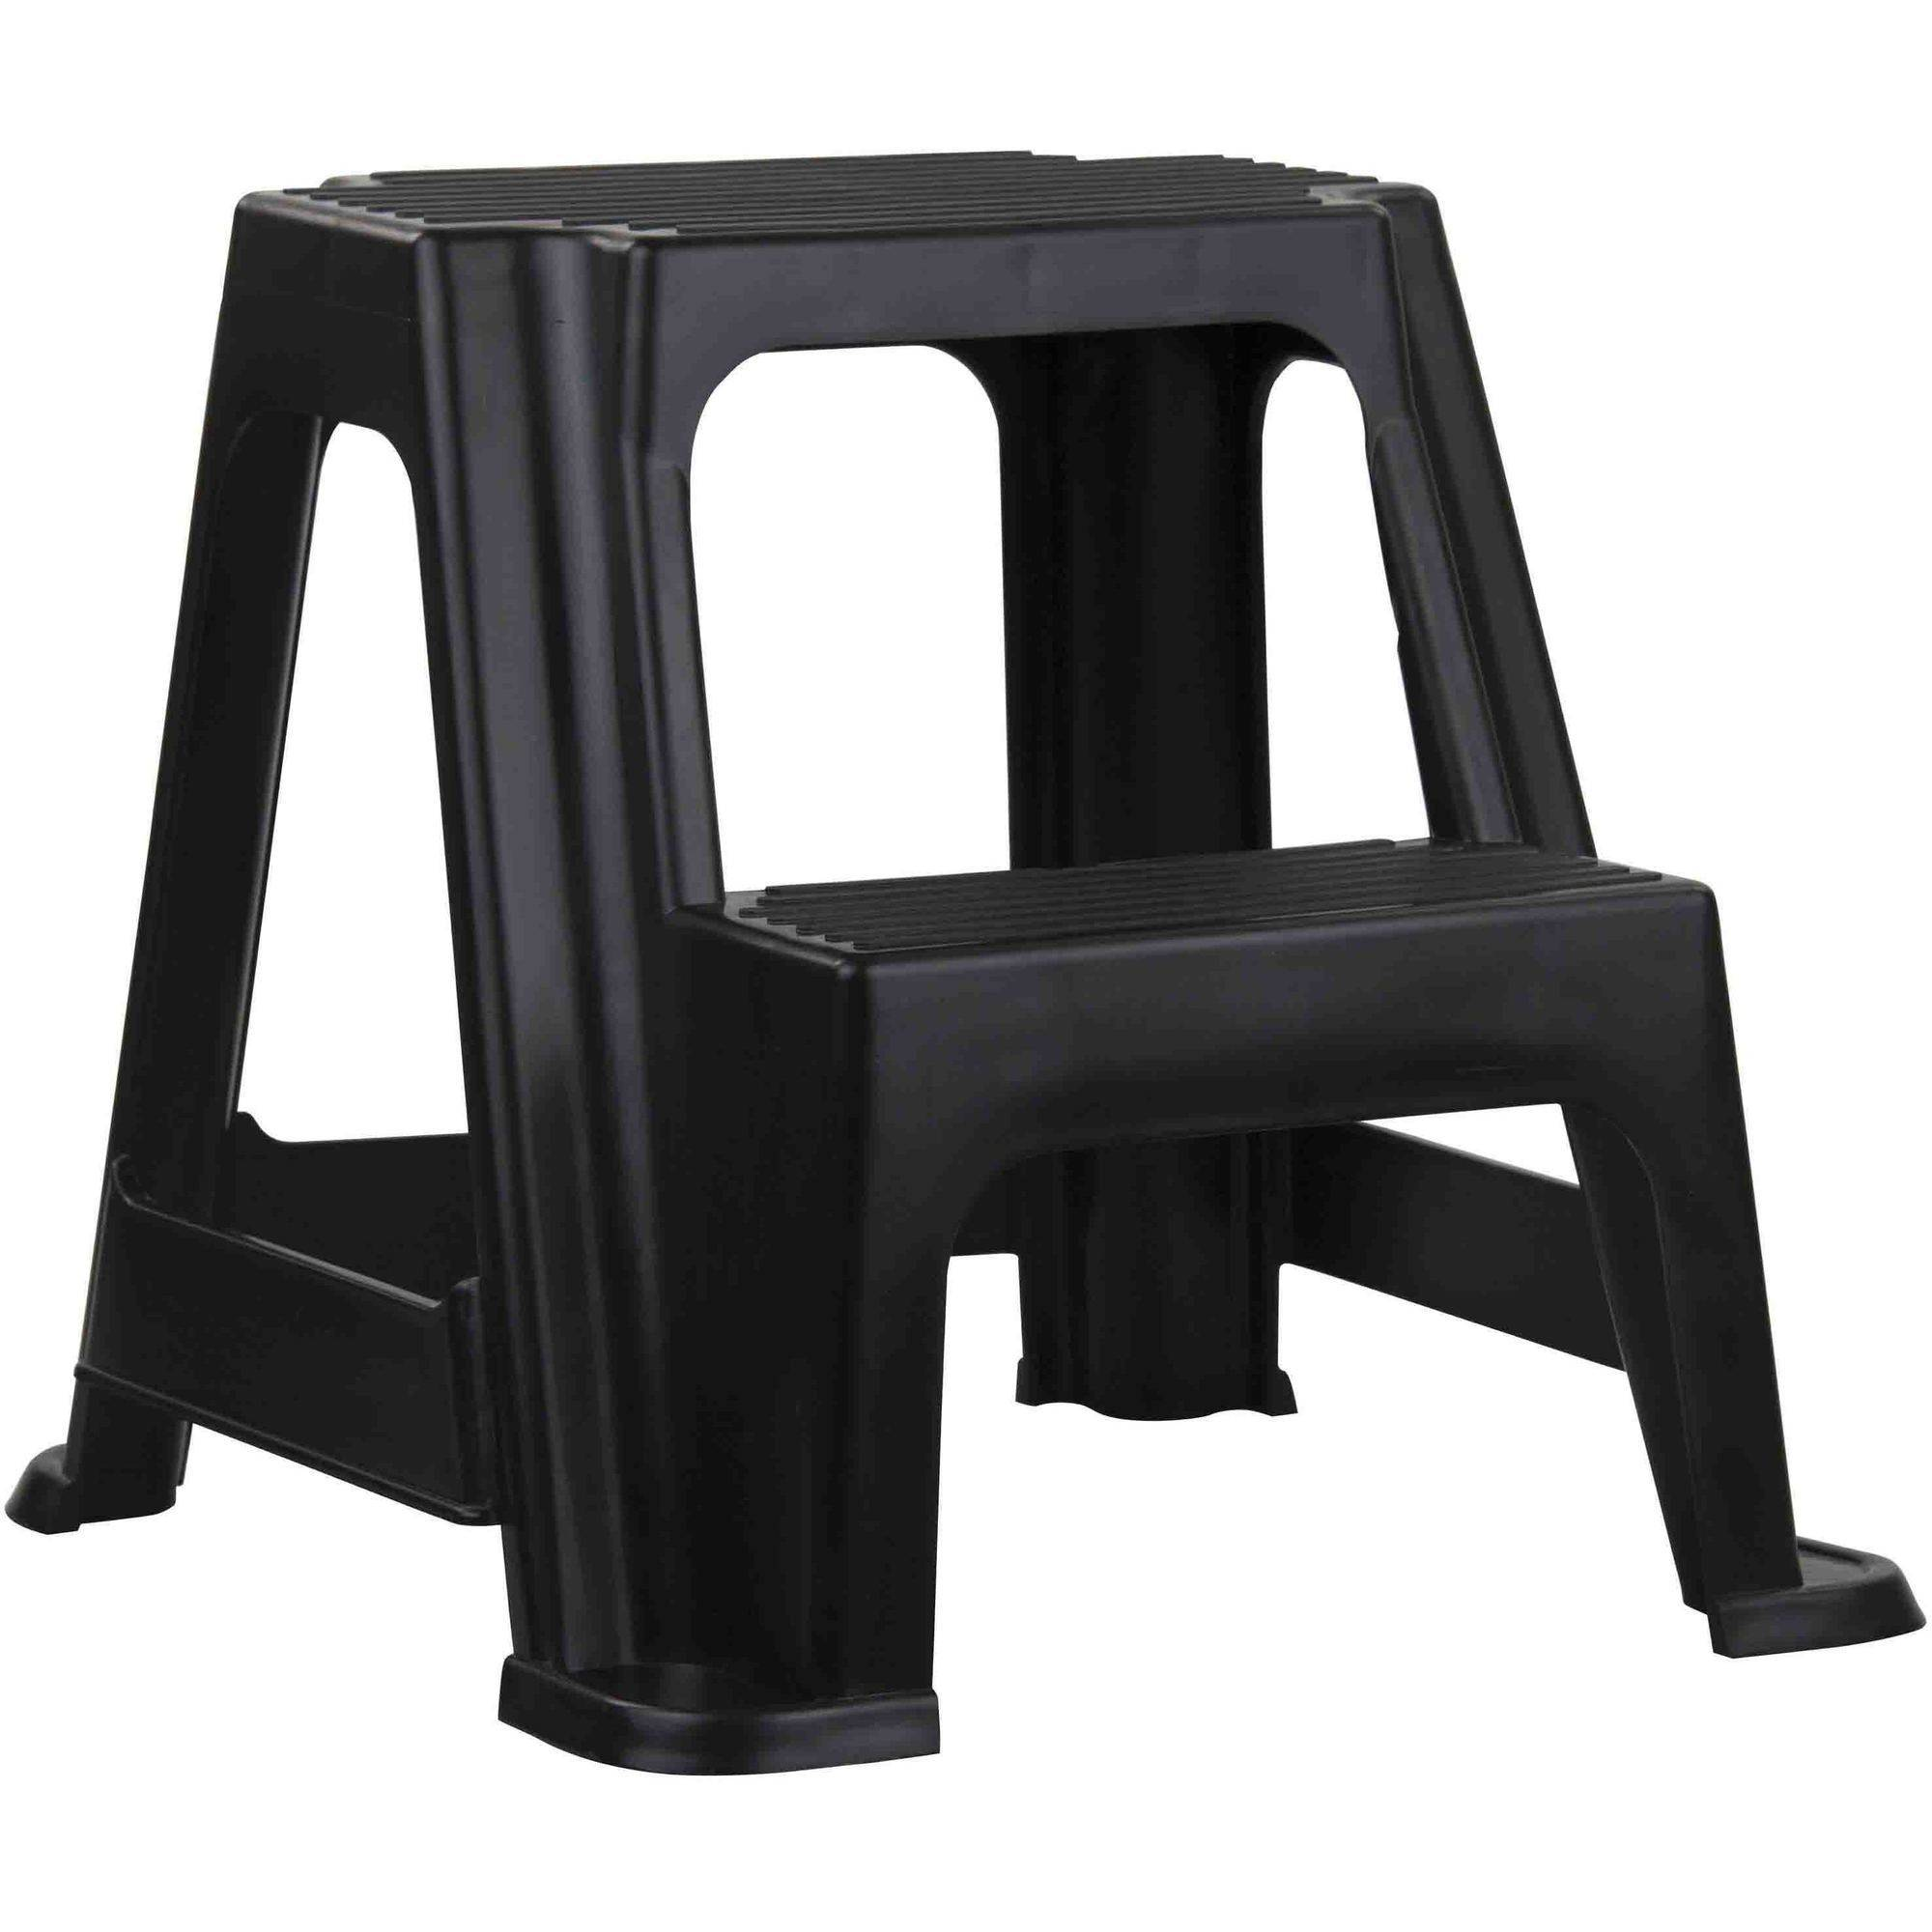 2 Step Ladder Lowes Fresh Step Stools Lowes Step Stool